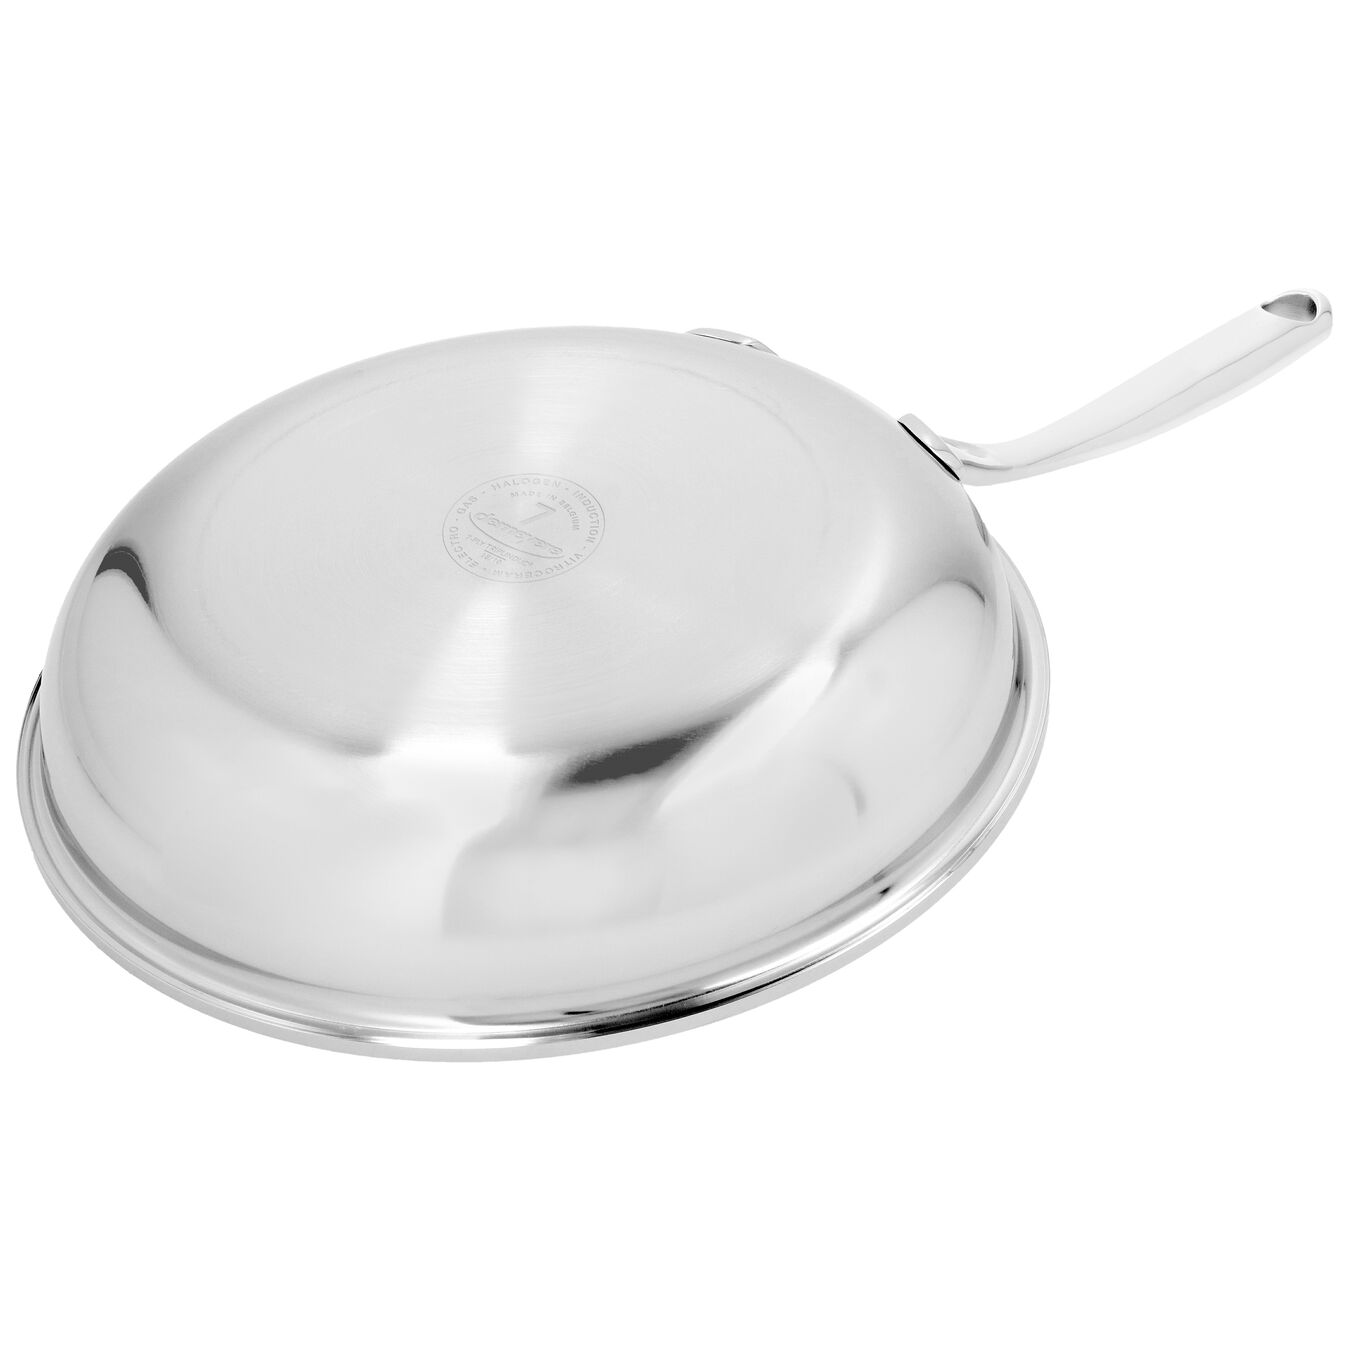 9.5-inch, 18/10 Stainless Steel, Frying pan,,large 7